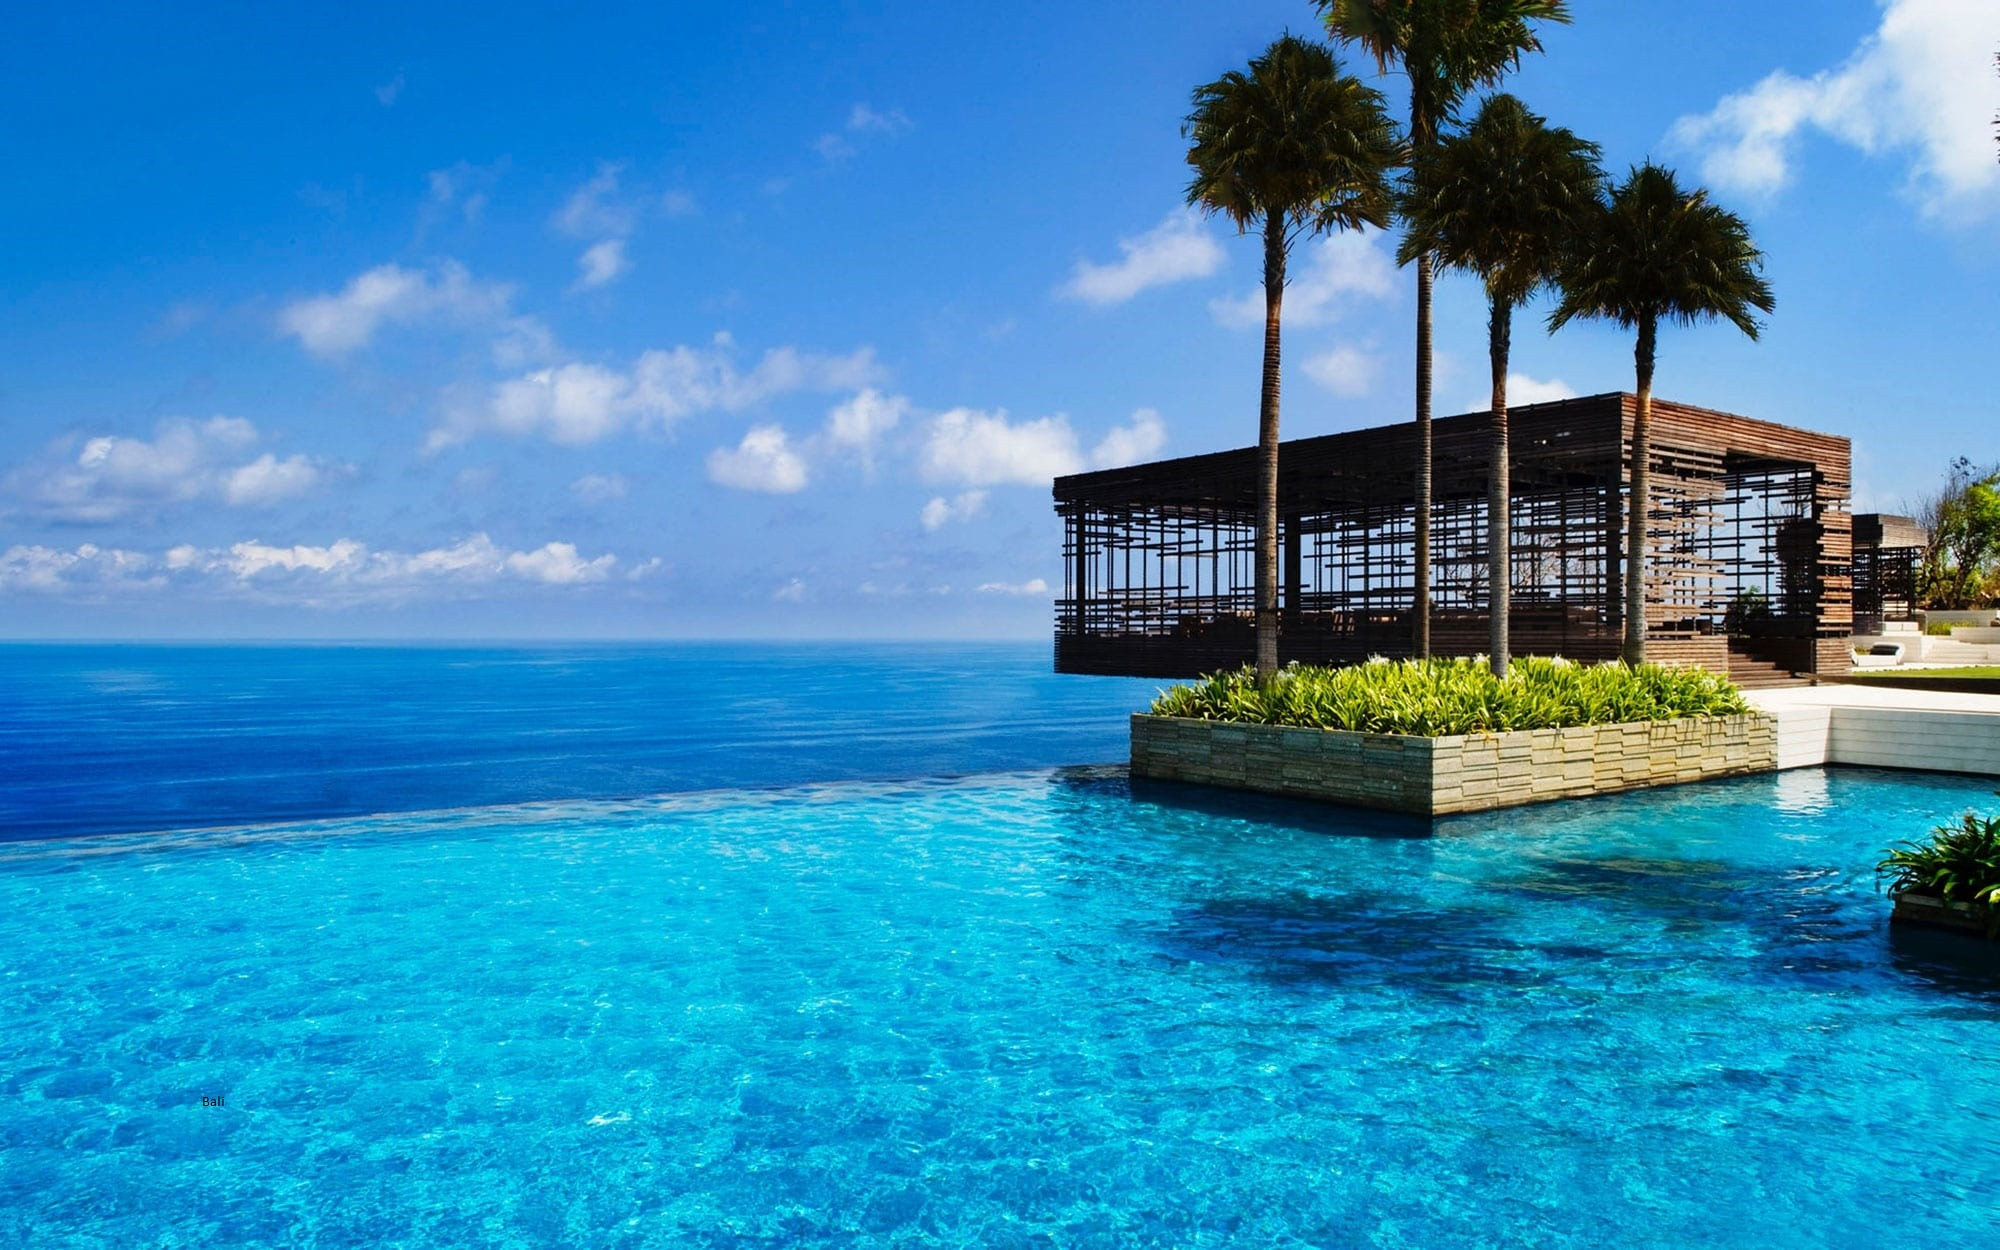 Bali, top place in Indonesia